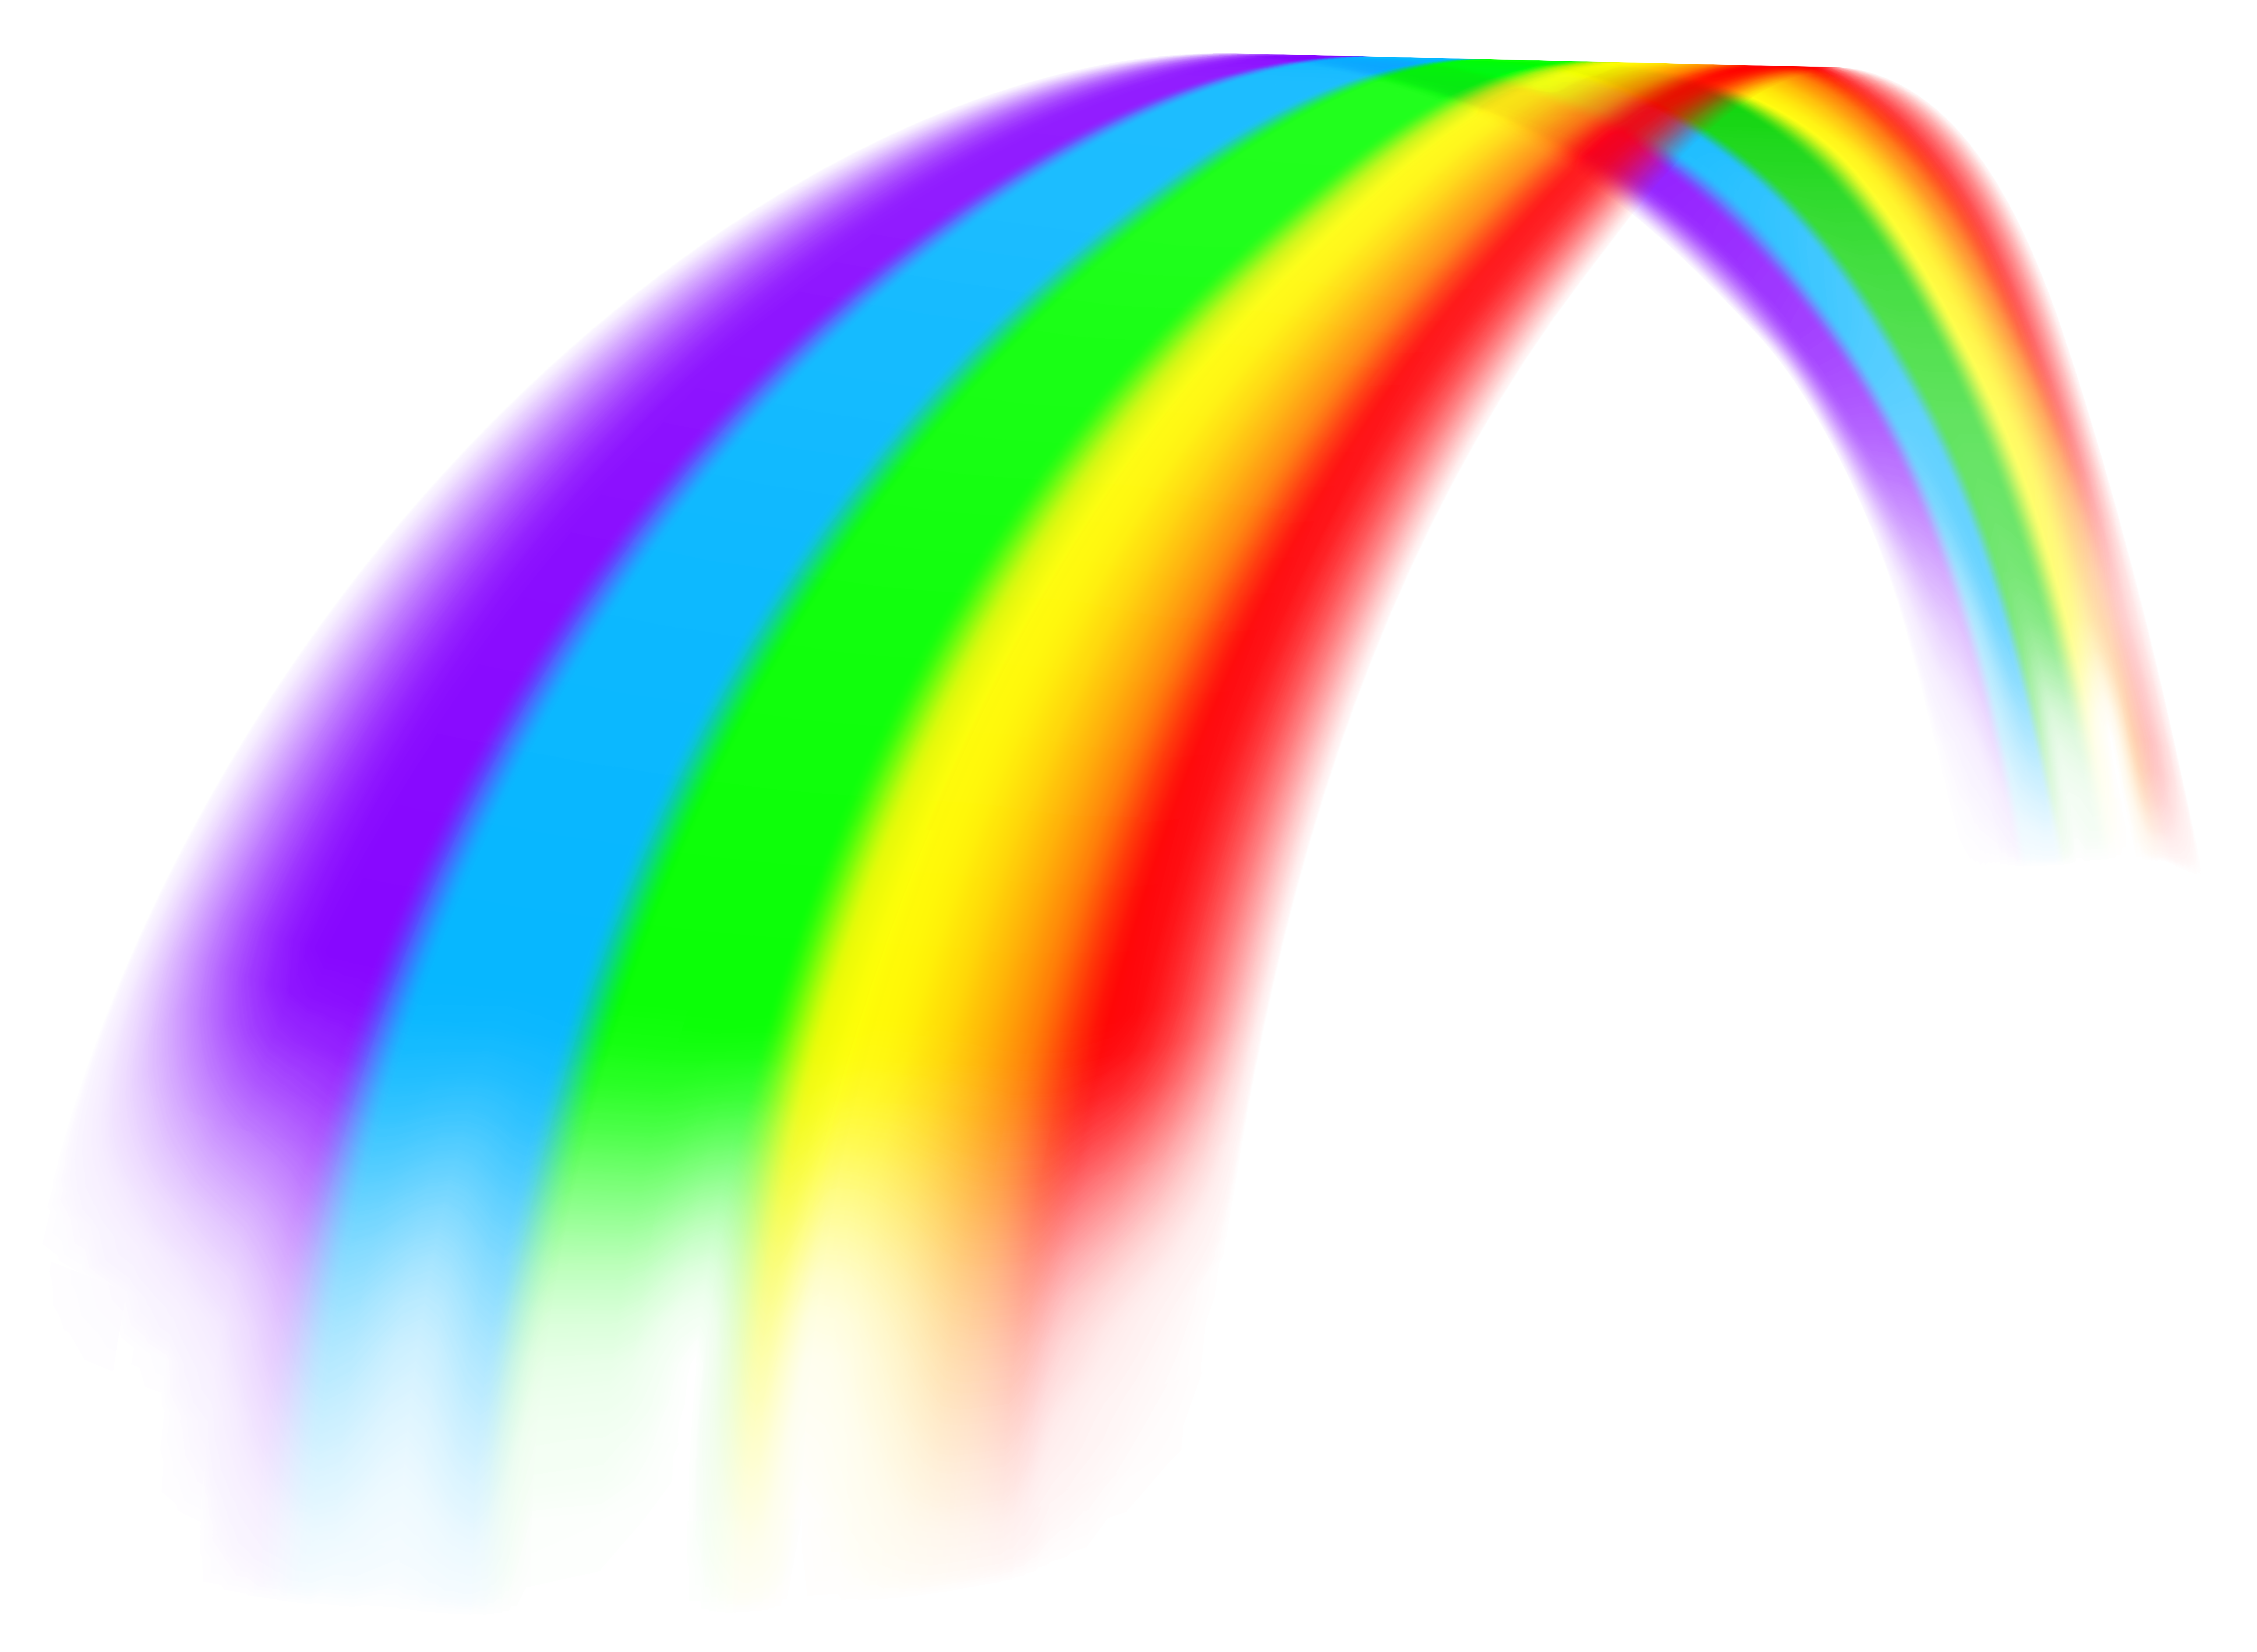 png freeuse download rainbow png transparent background